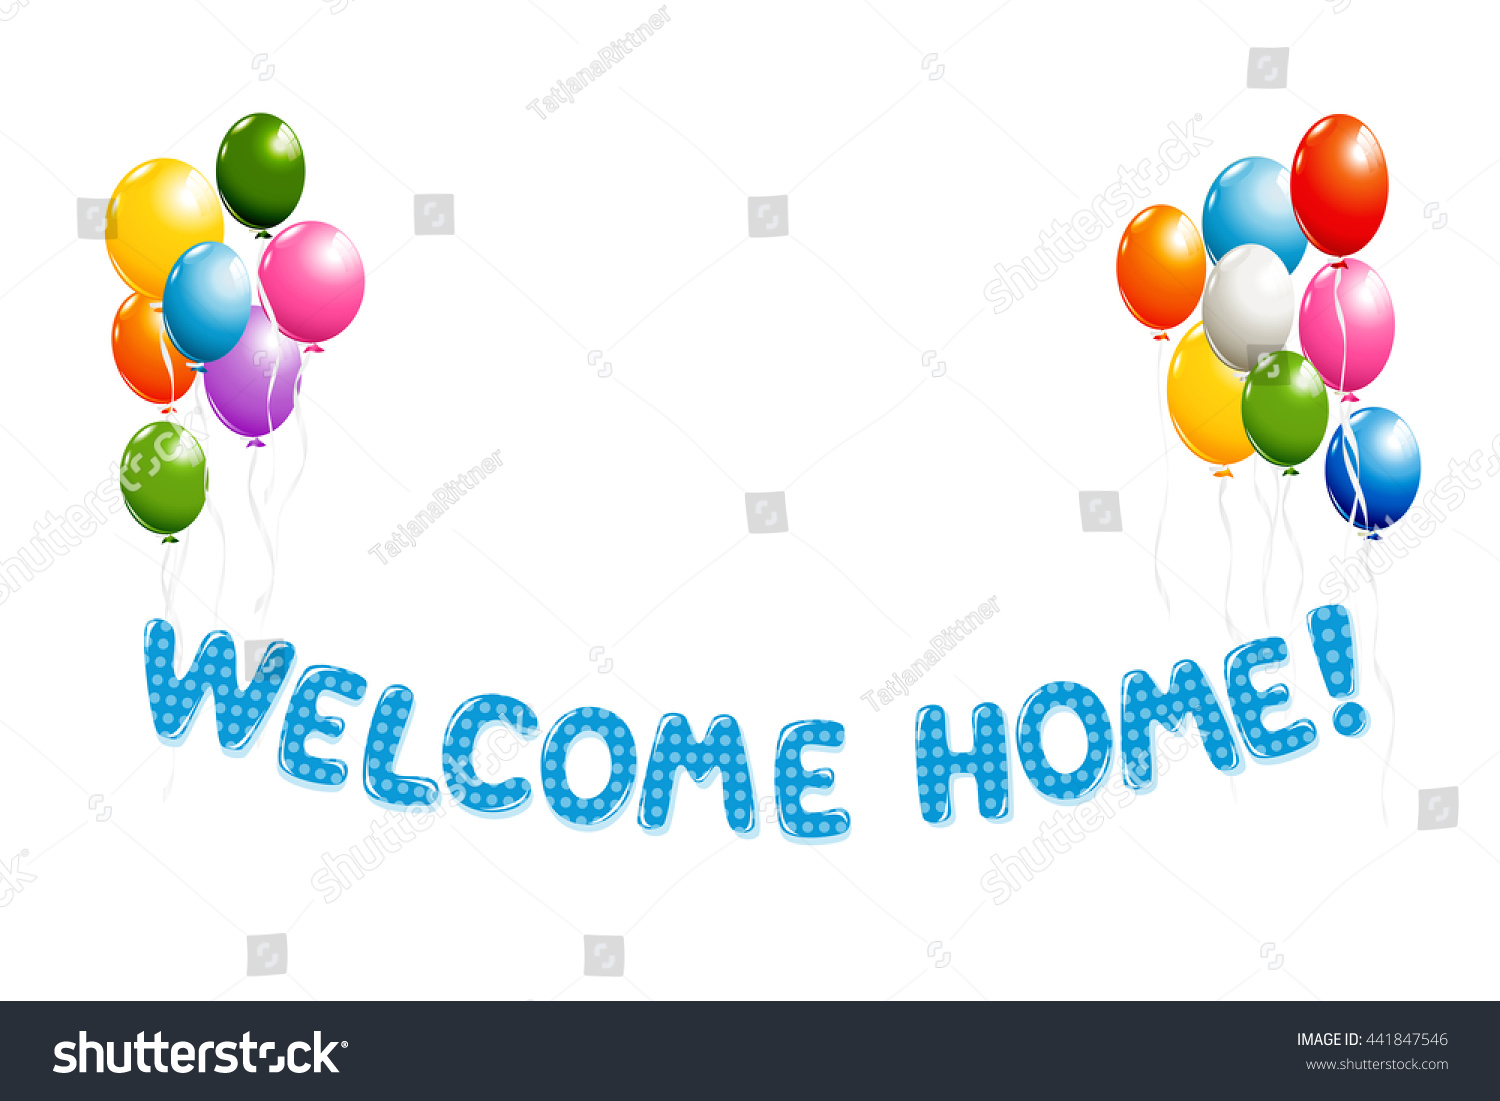 Welcome Home Text Blue Polka Dot Stock Illustration 441847546 ...